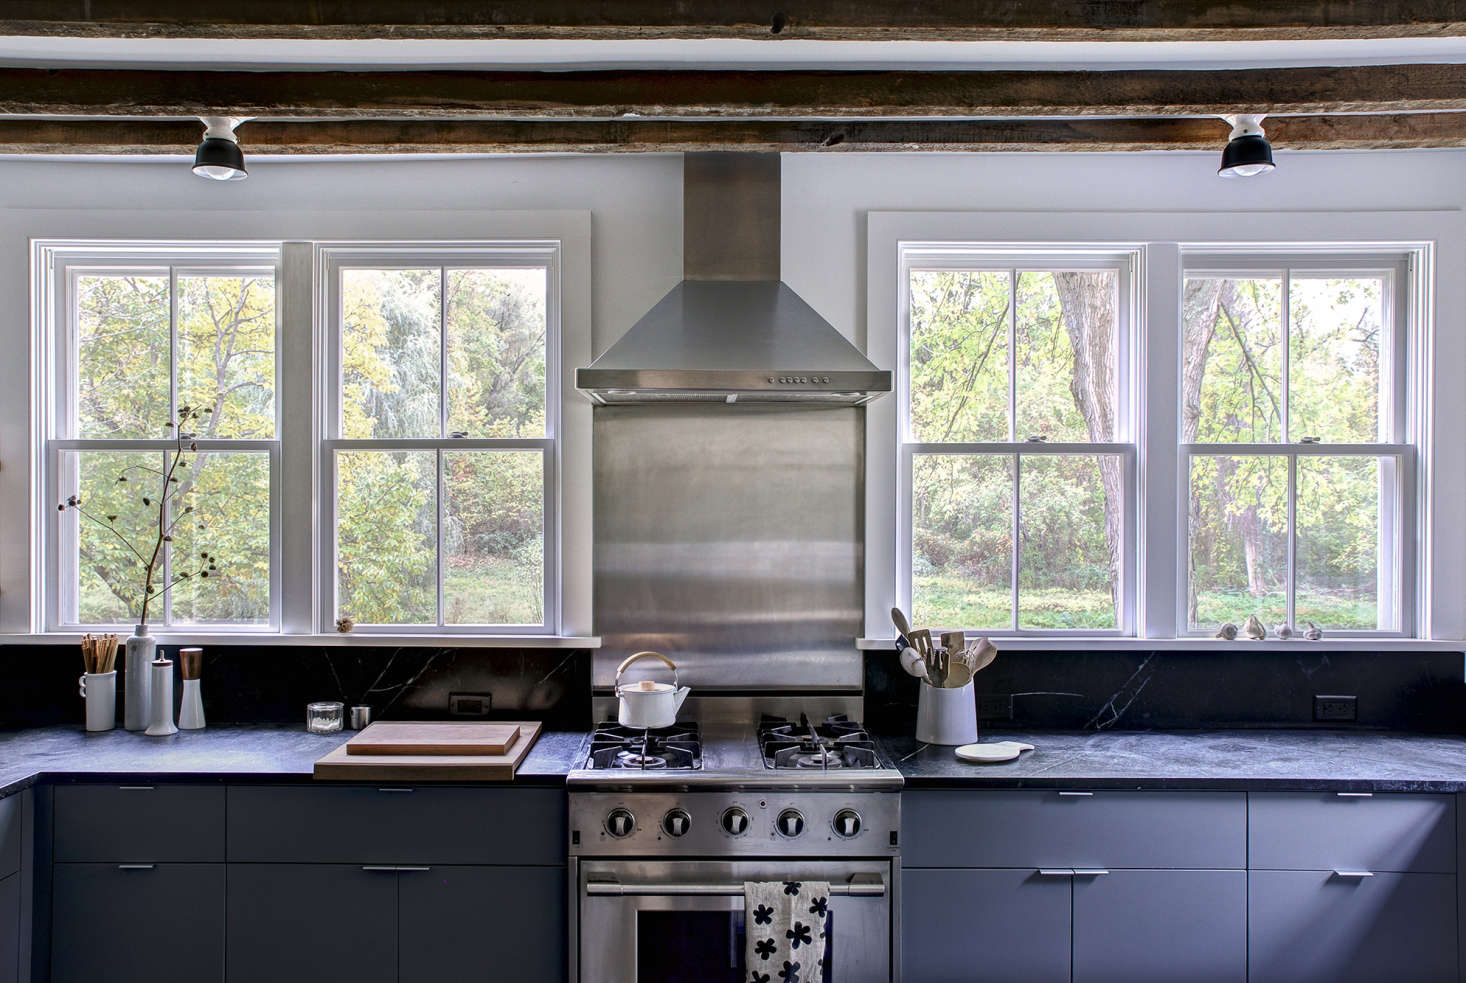 Dunja replaced three small, central windows with four more generous specimens from Marvin, which now frame a NXR stoveand make the most of the woodland view.